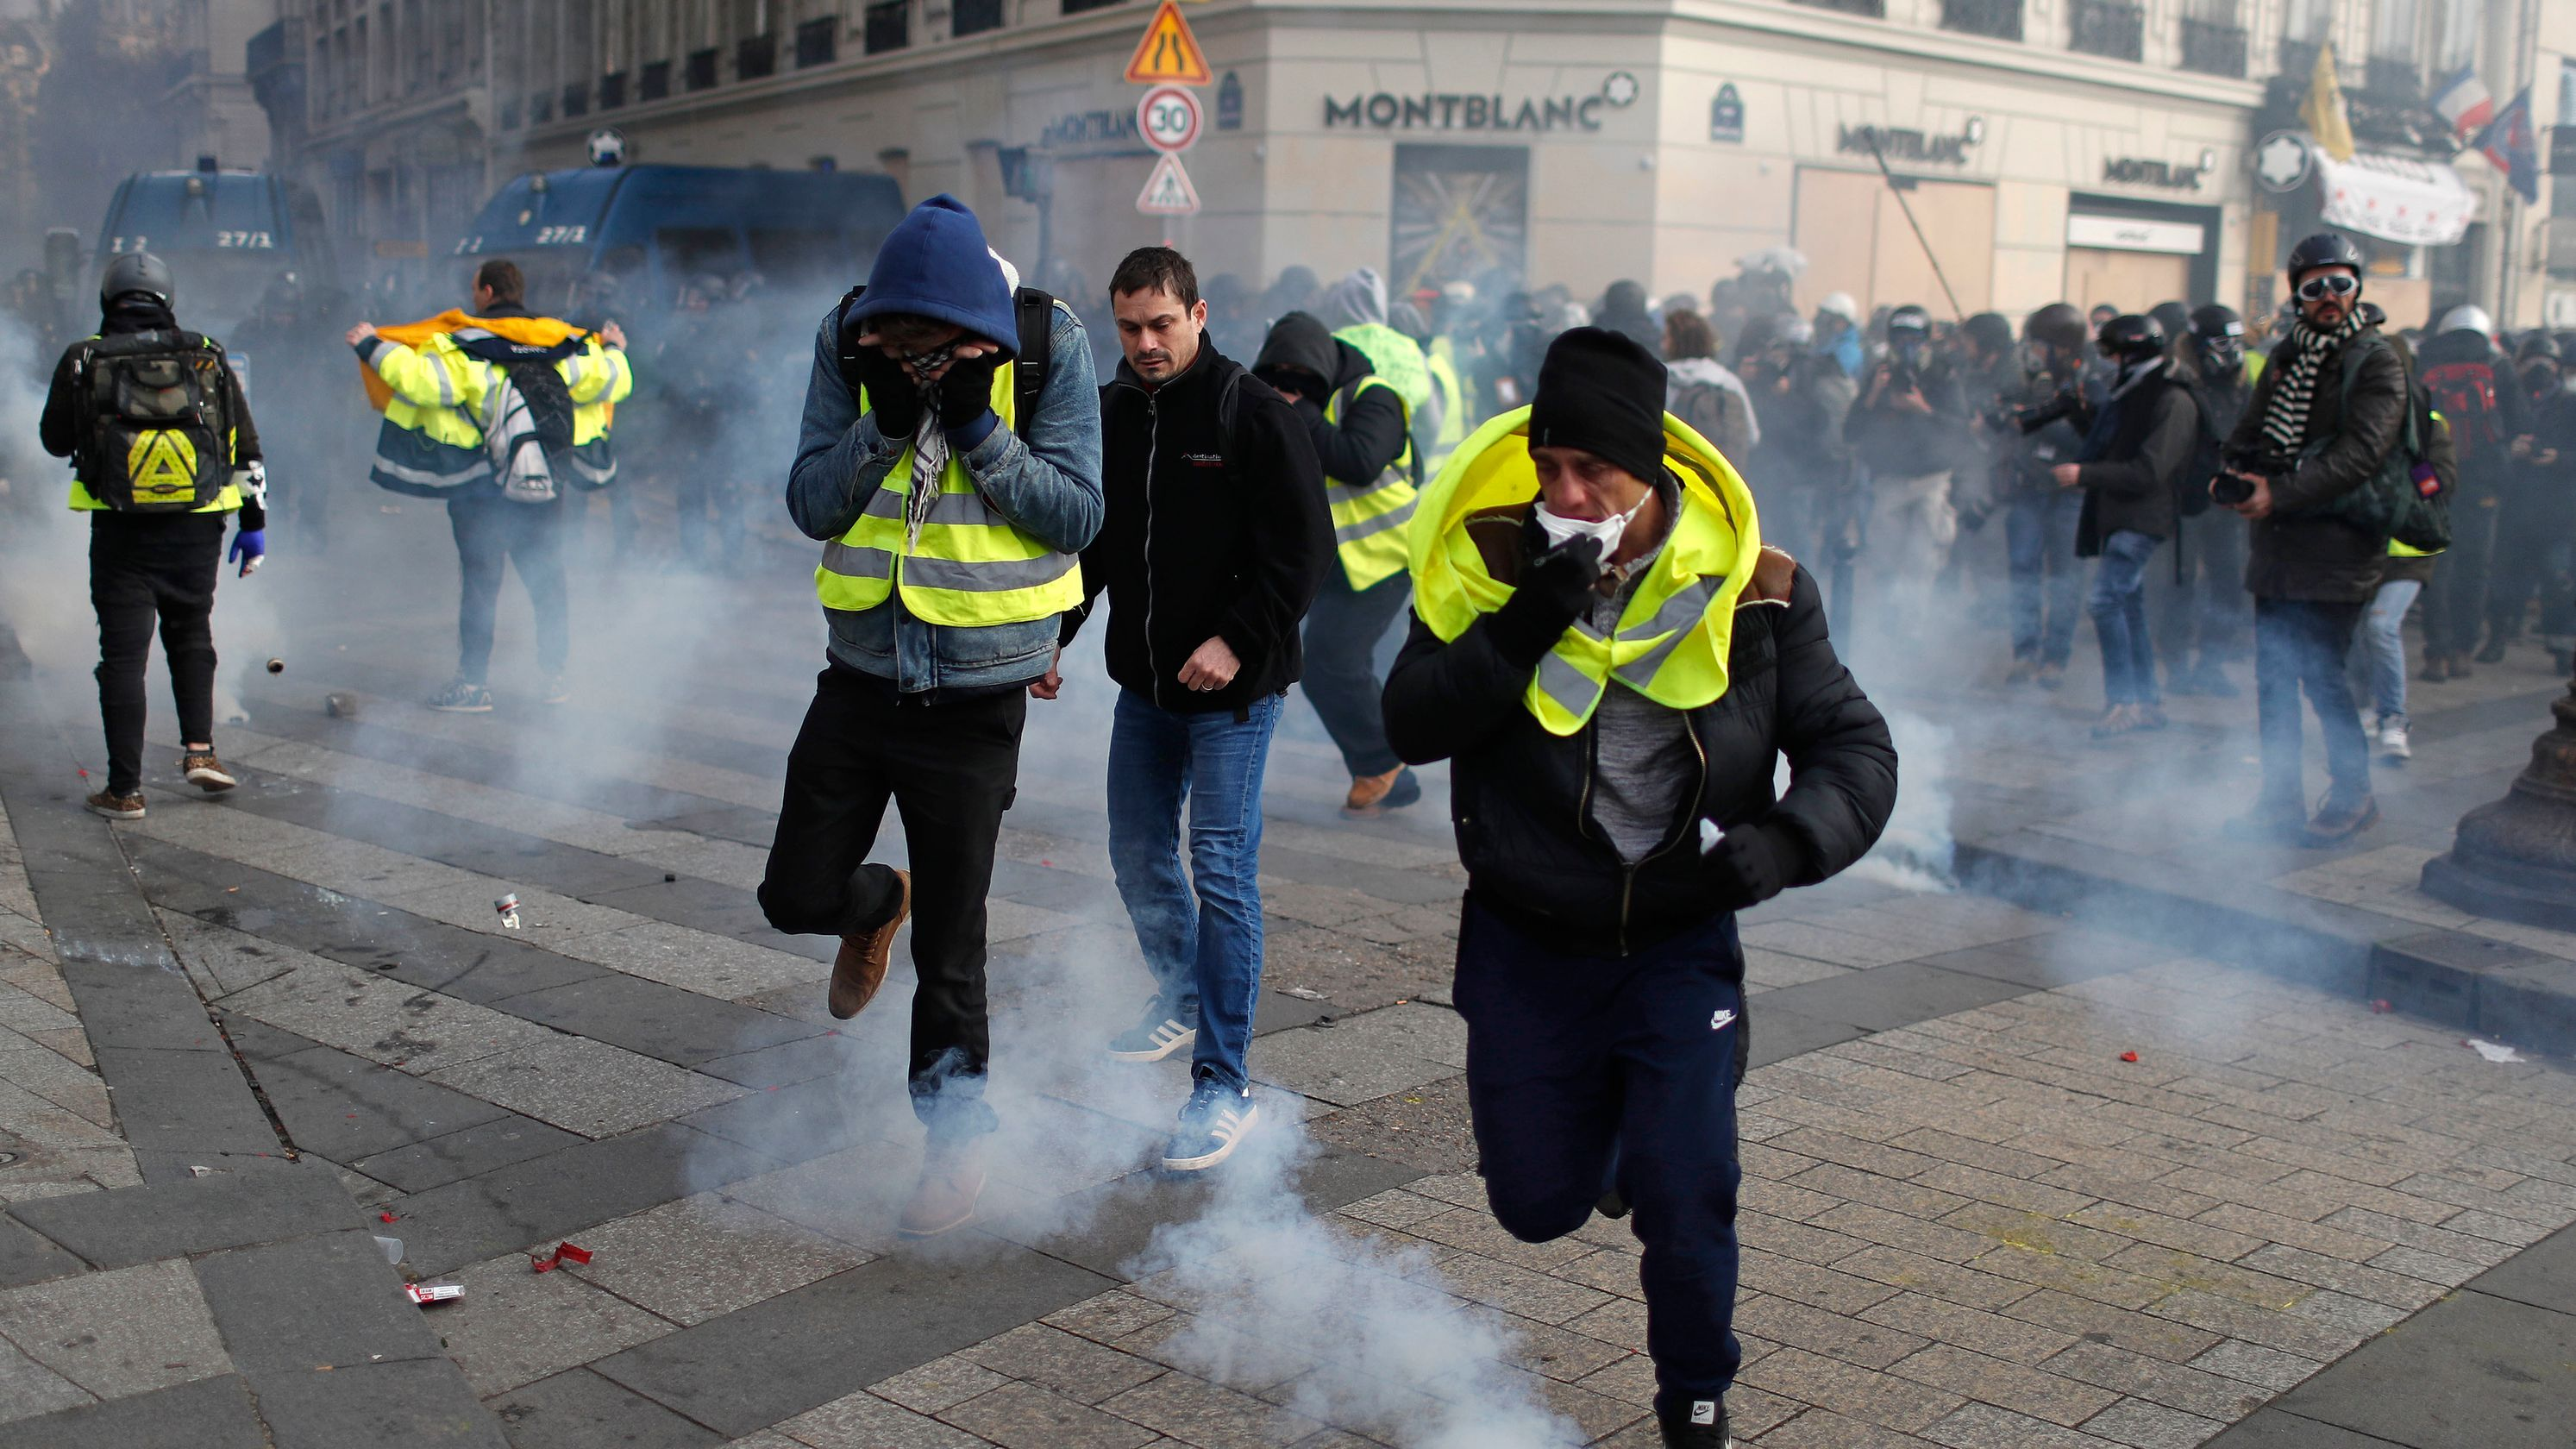 Yellow vest protesters in France march through Paris amid fears of new violence